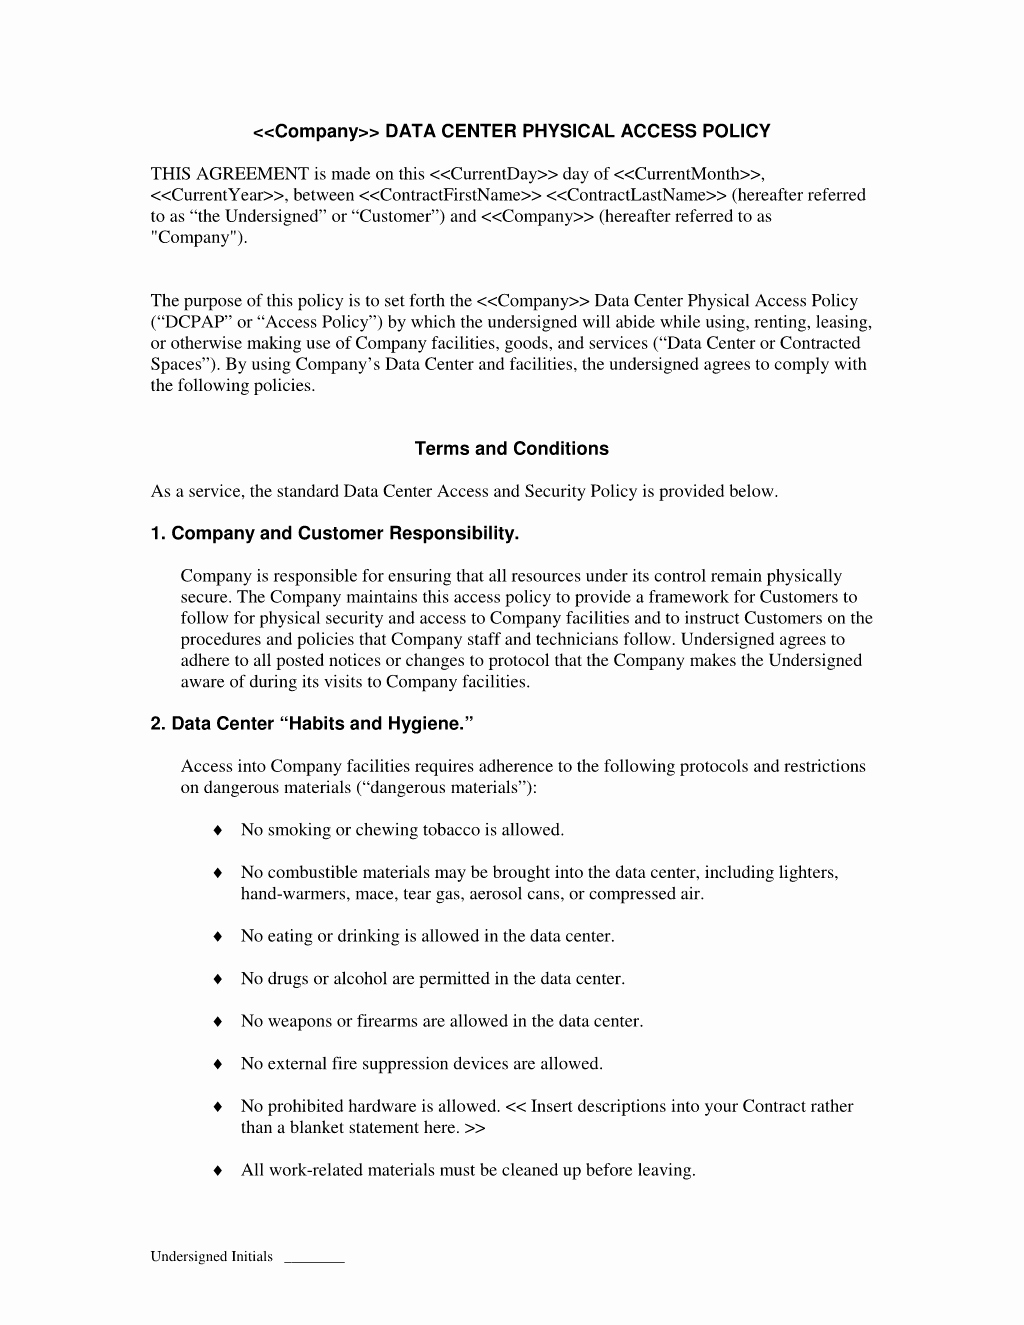 Physical Security Policy Template Fresh Ideas for Physical Security Policy Template Job Summary